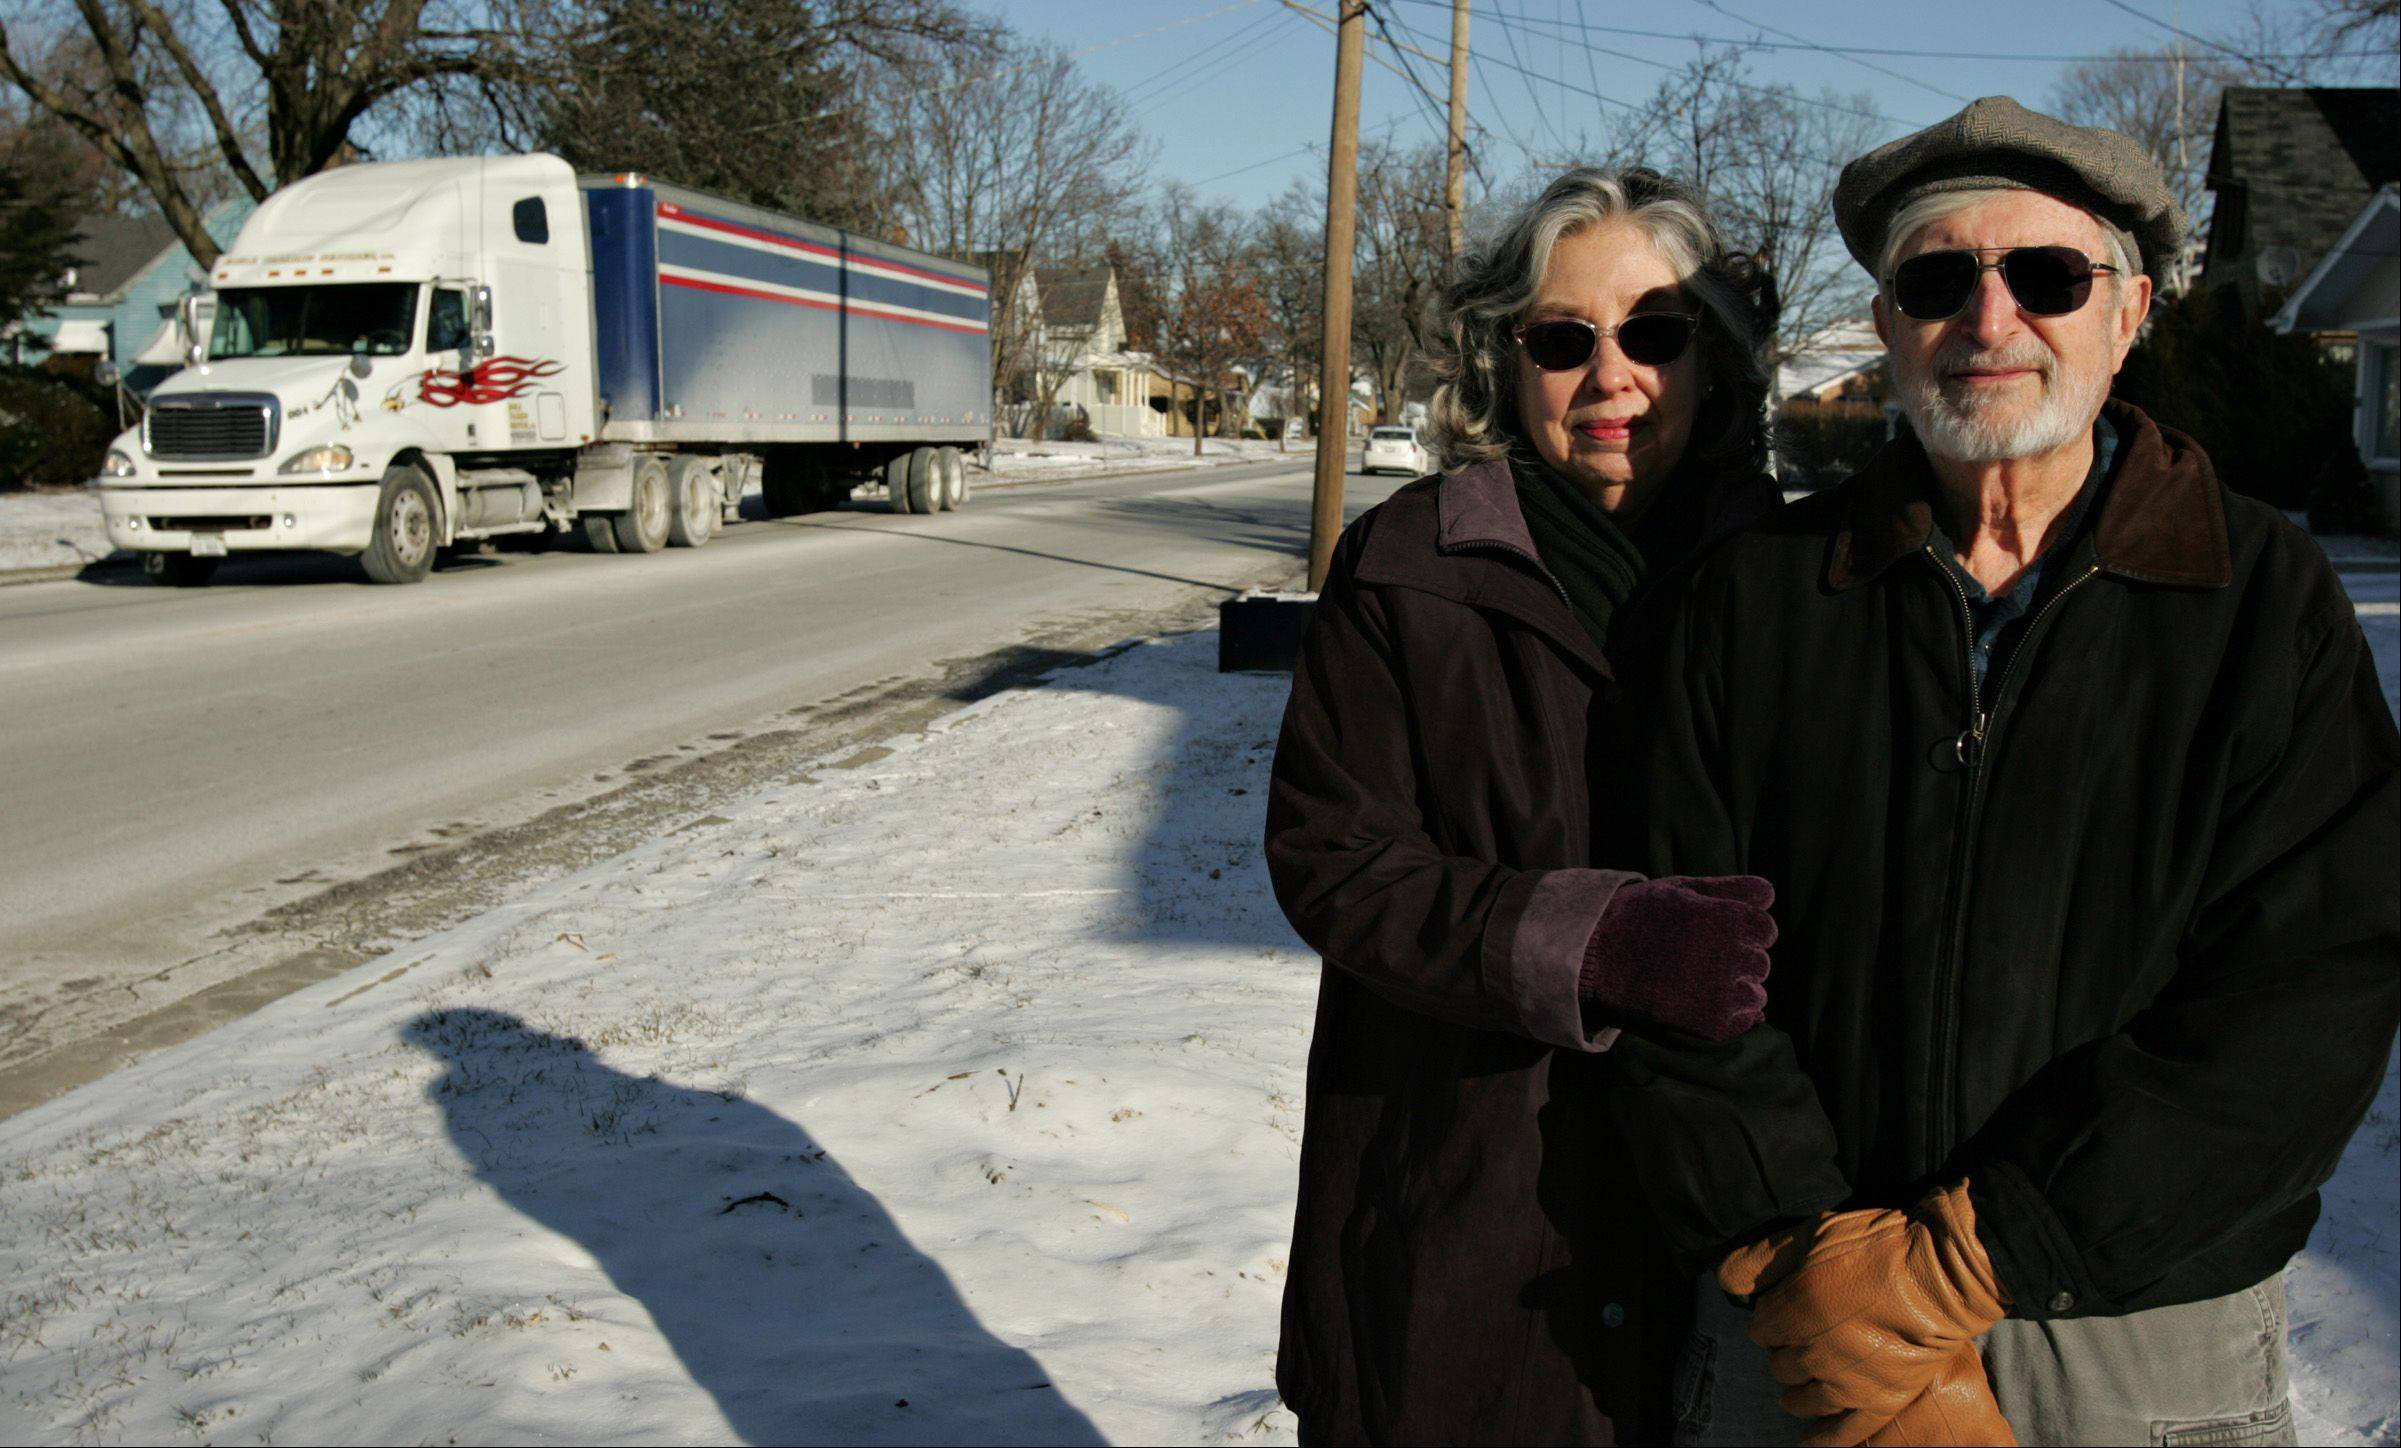 Mary Ellen and Mich Barbezat and other residents of Liberty Street in Elgin hope the Illinois Department of Transportation will agree to reroute trucks off their street, which was originally designed as a residential street.